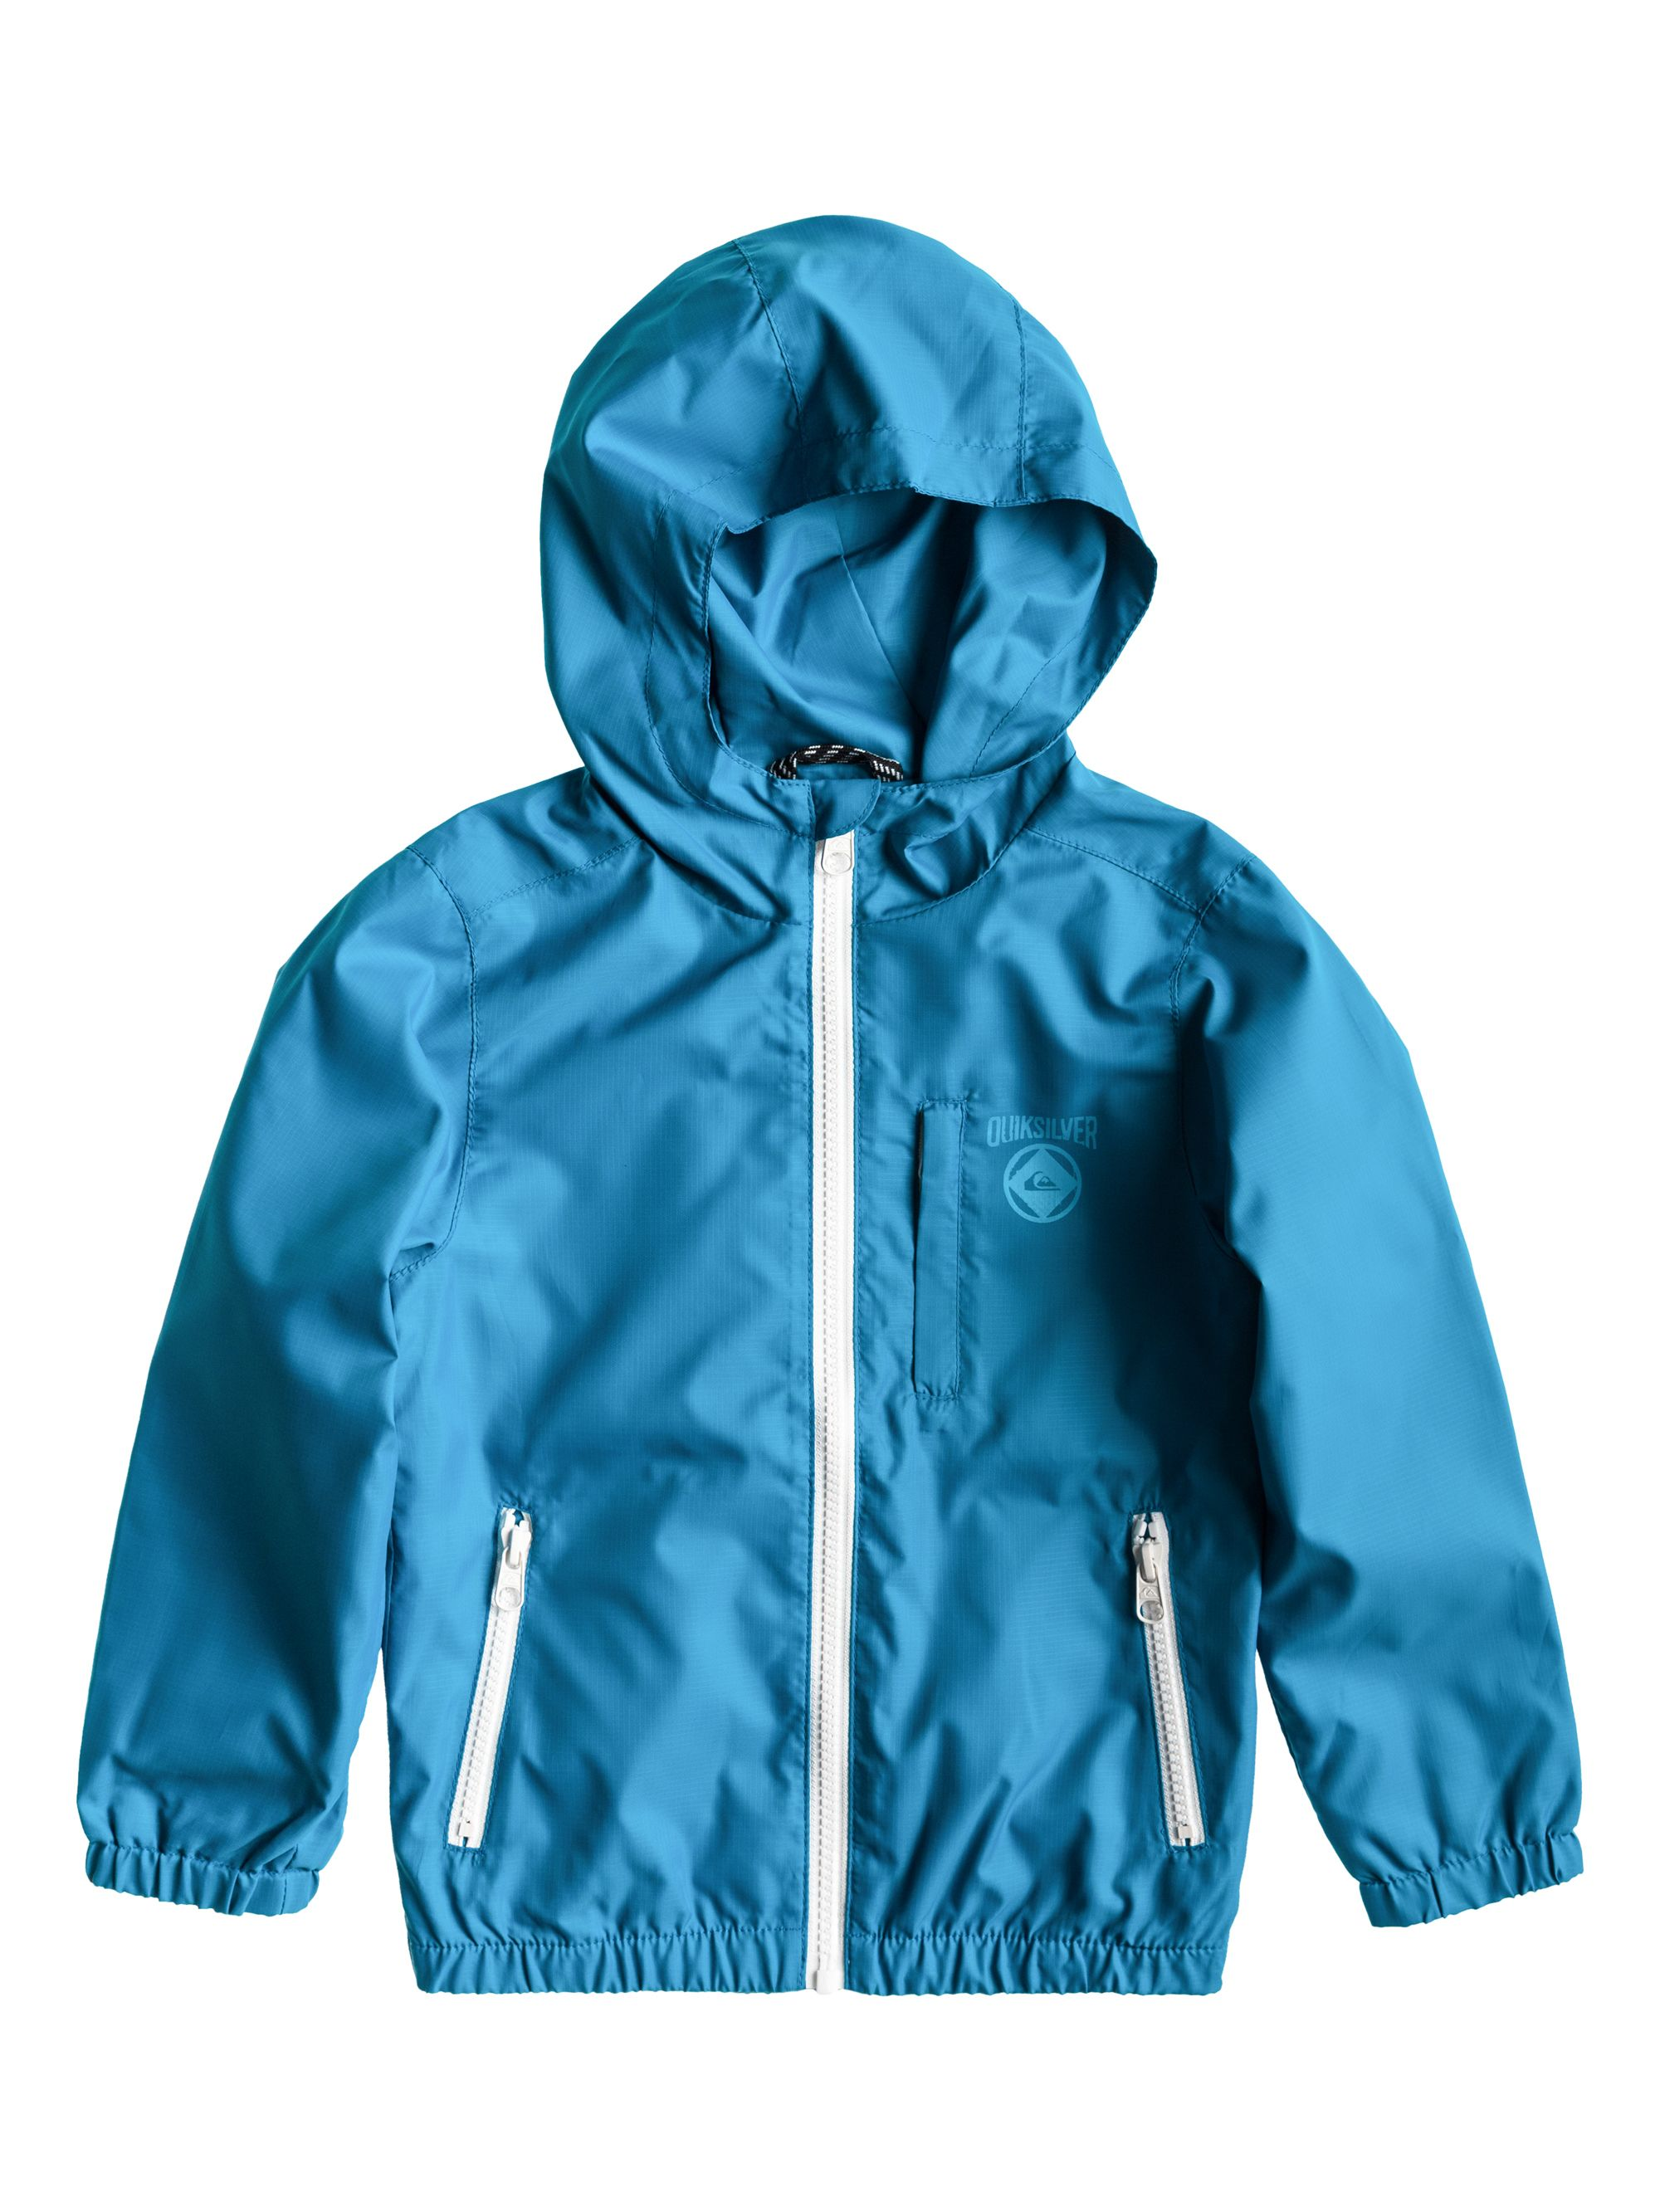 Boys boyd windbreaker jacket